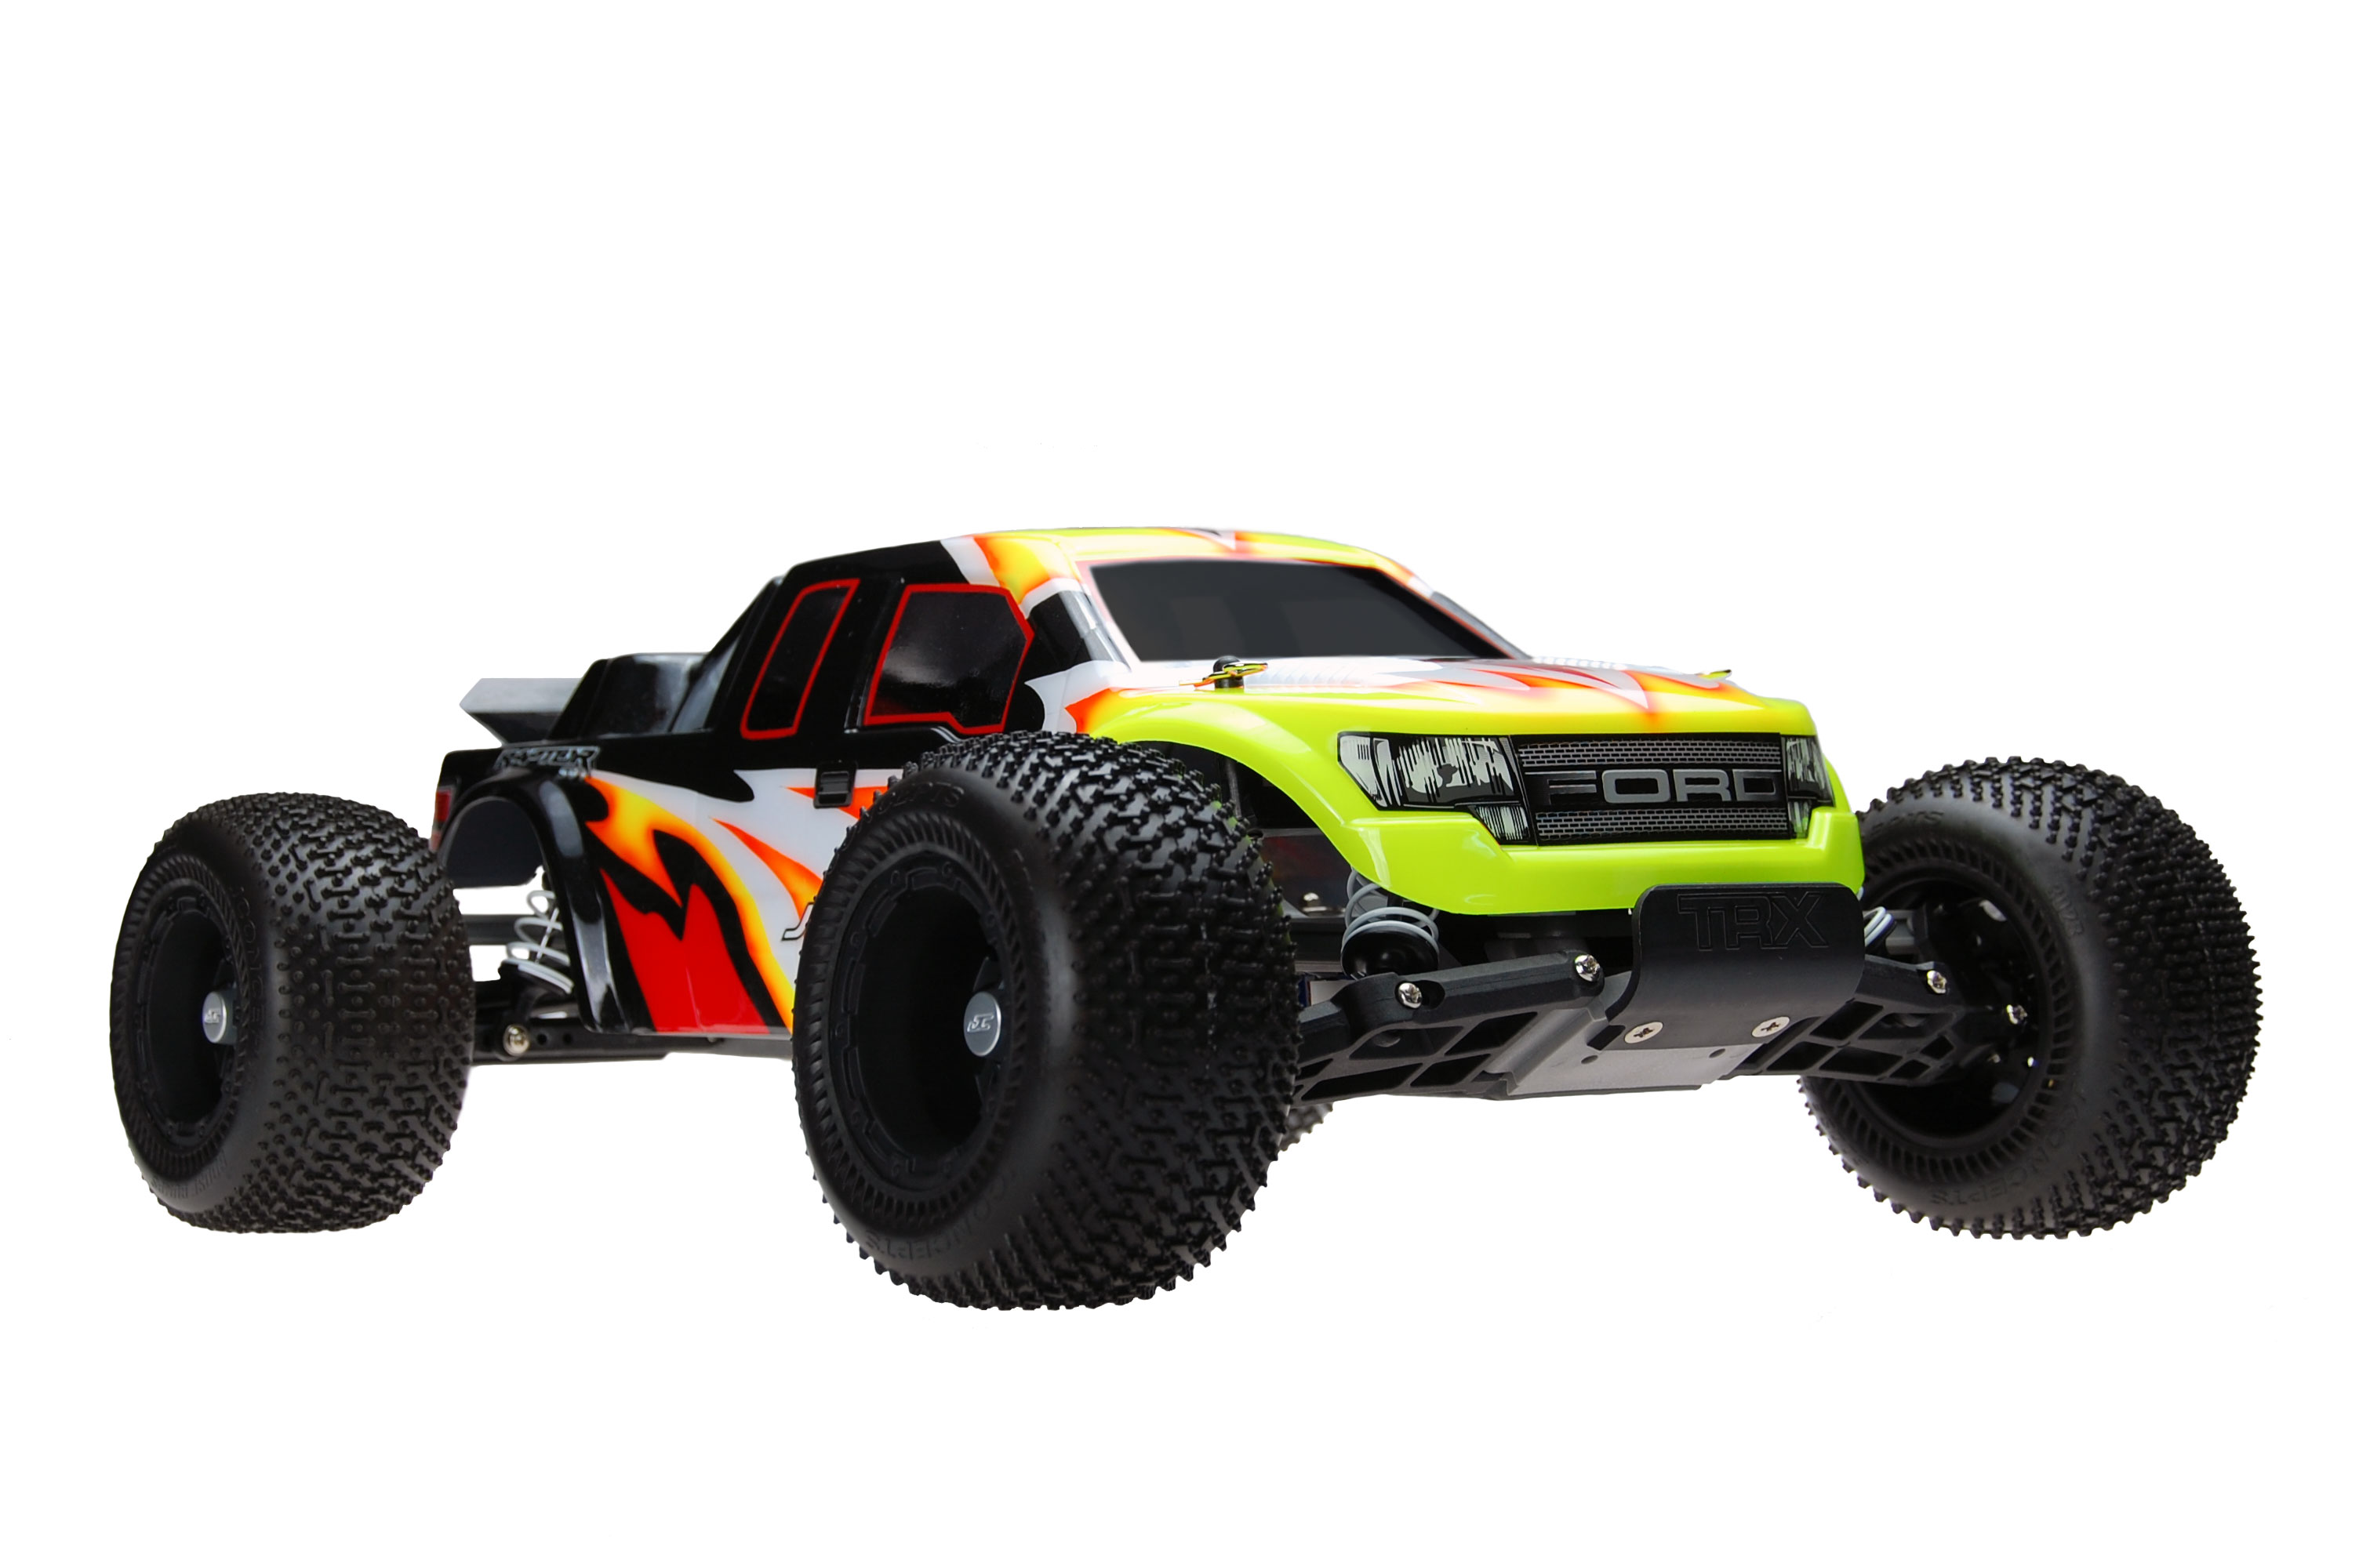 Manufactured by JConcepts Inc Revo JATO™ T MAXX™ SLASH SLASH 4X4 etc are trademarks and registered trademarks of Traxxas L P